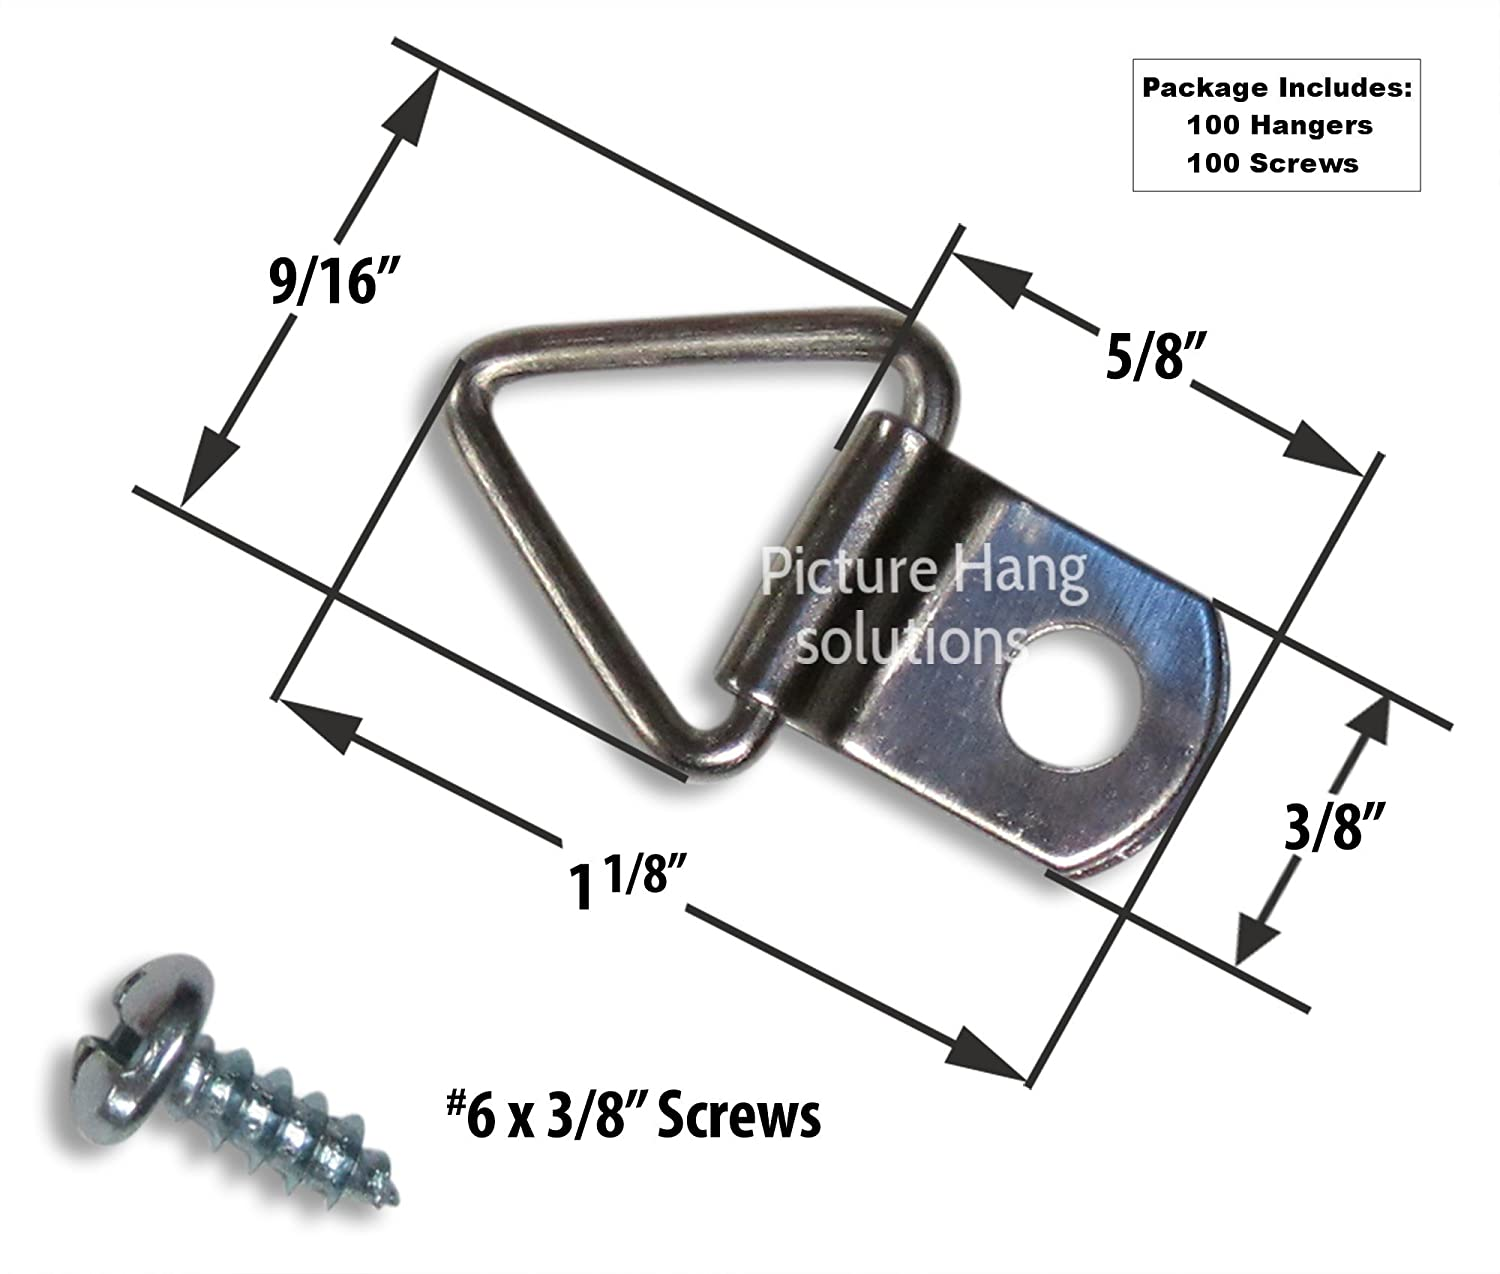 Frame triangle ring hanger small d ring picture hanger with frame triangle ring hanger small d ring picture hanger with screws 100 pack picture hang solutions amazon jeuxipadfo Gallery